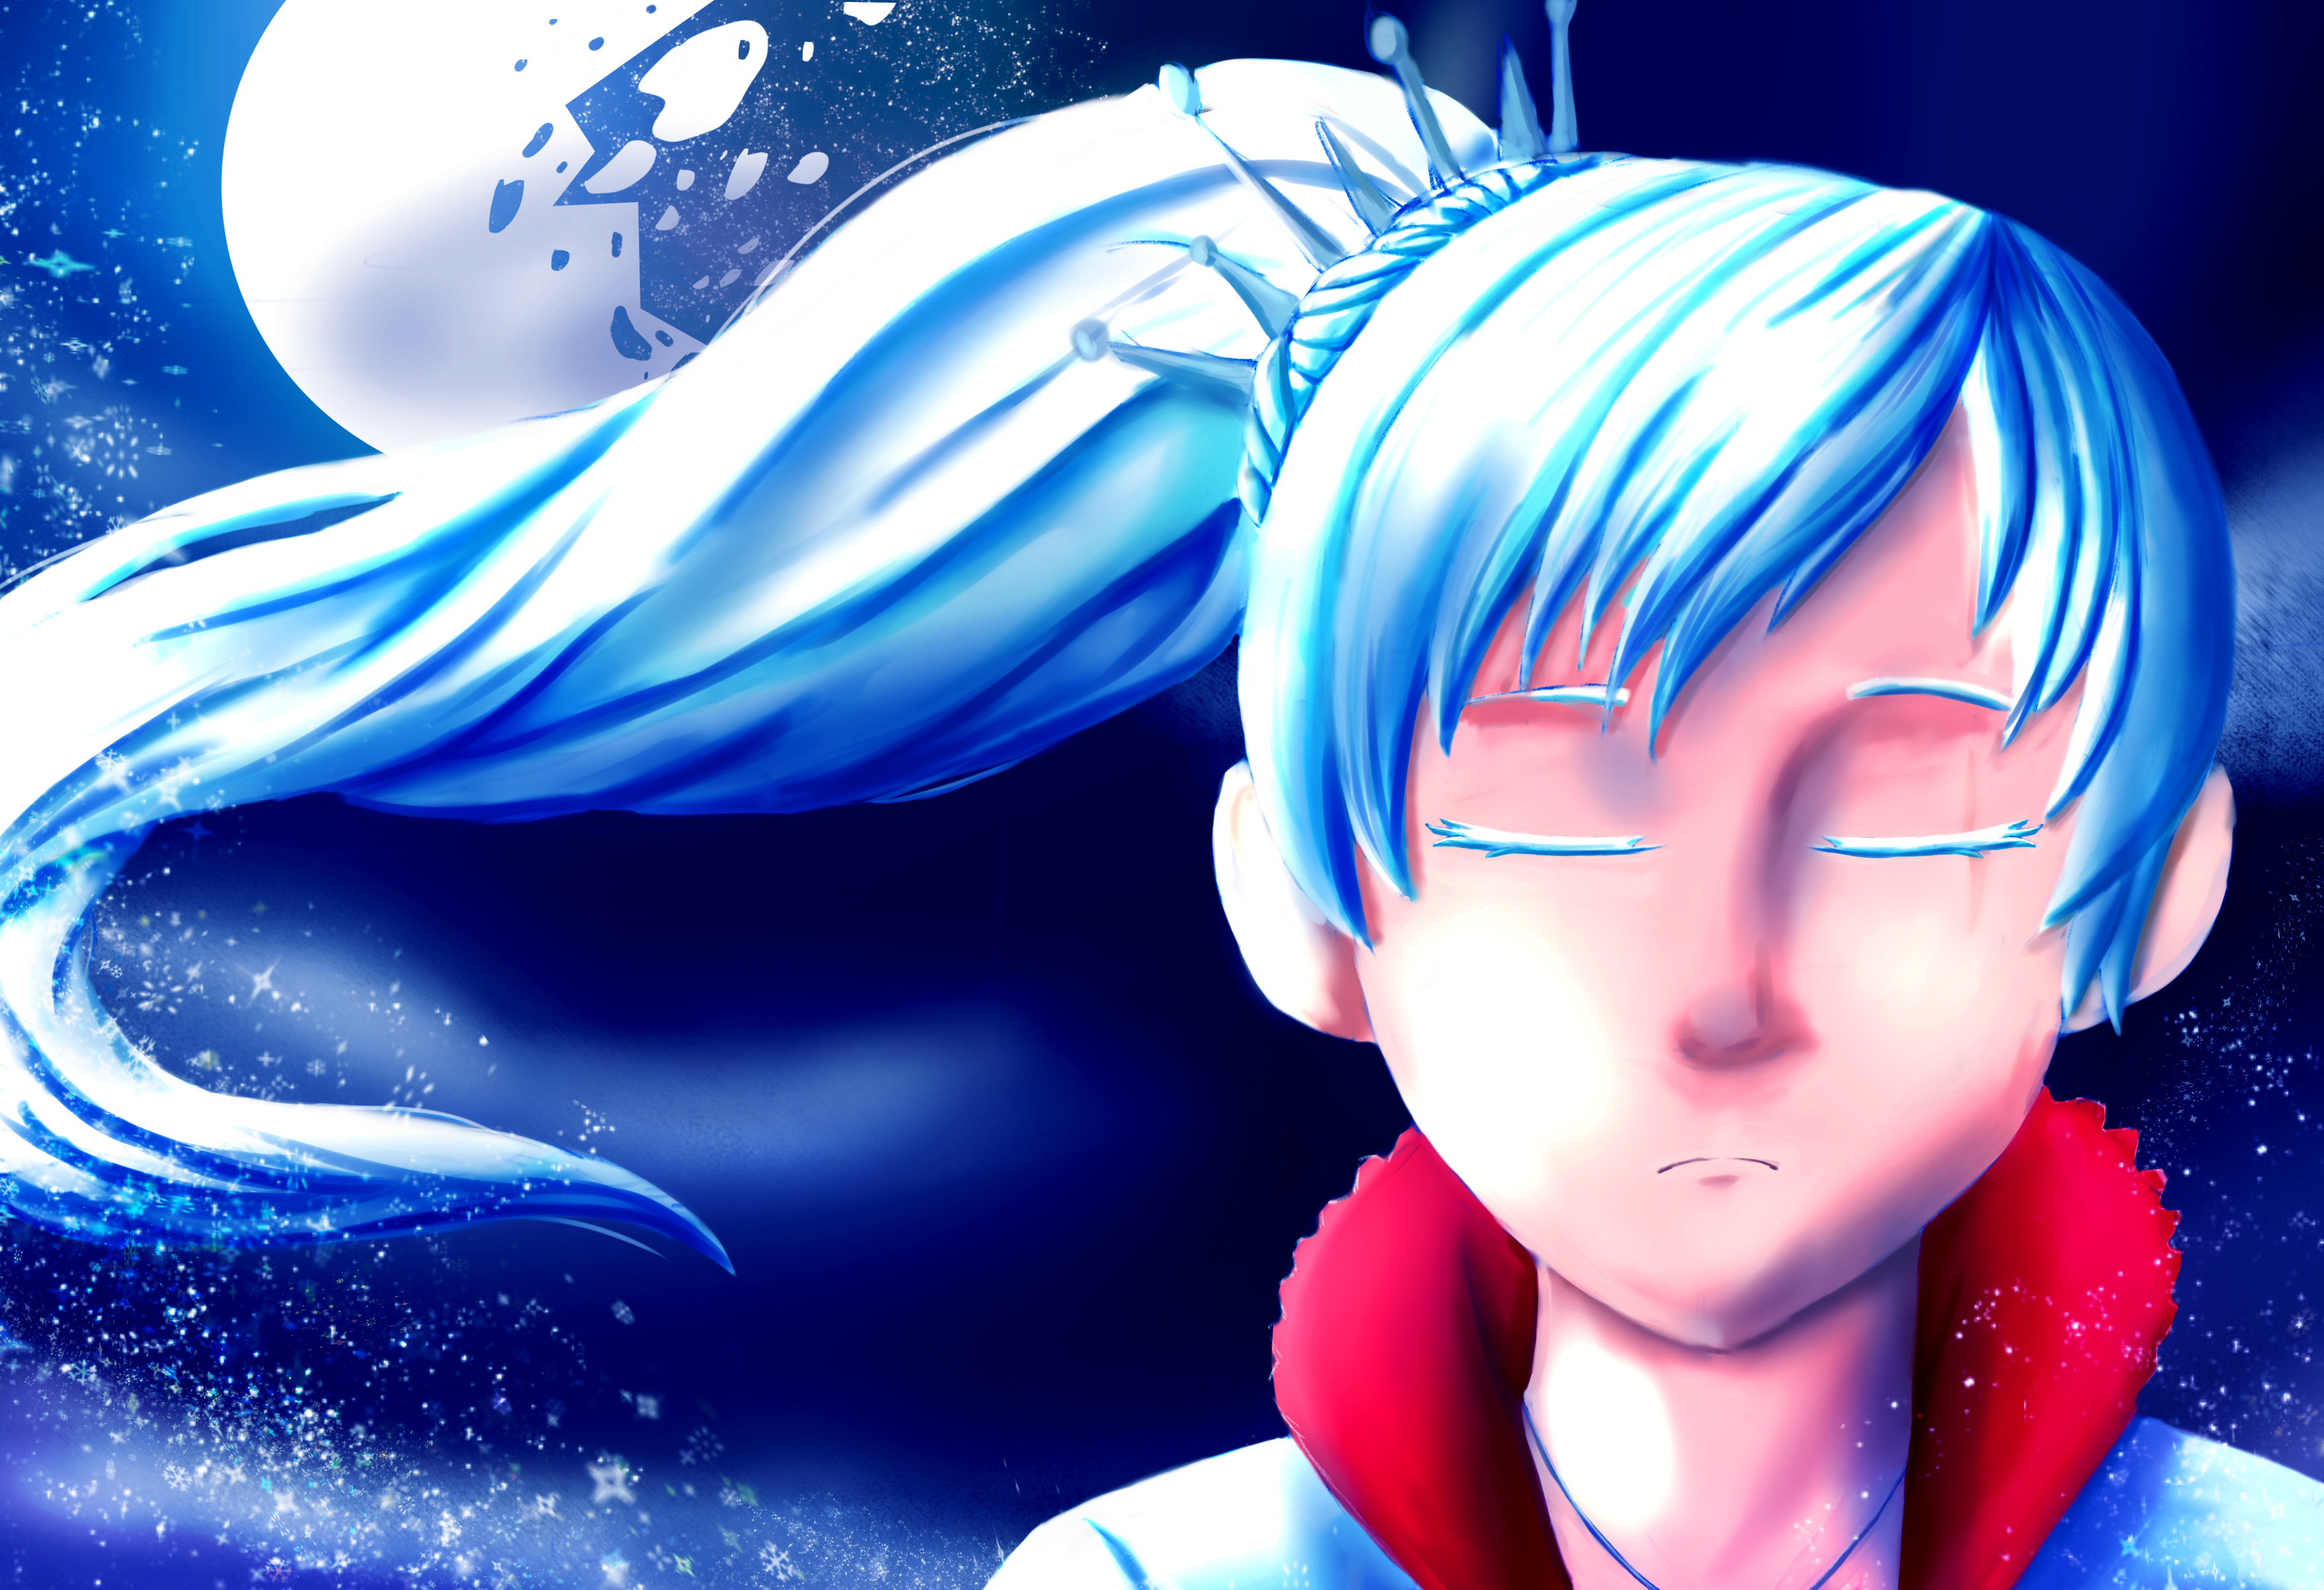 Weiss from RWBY